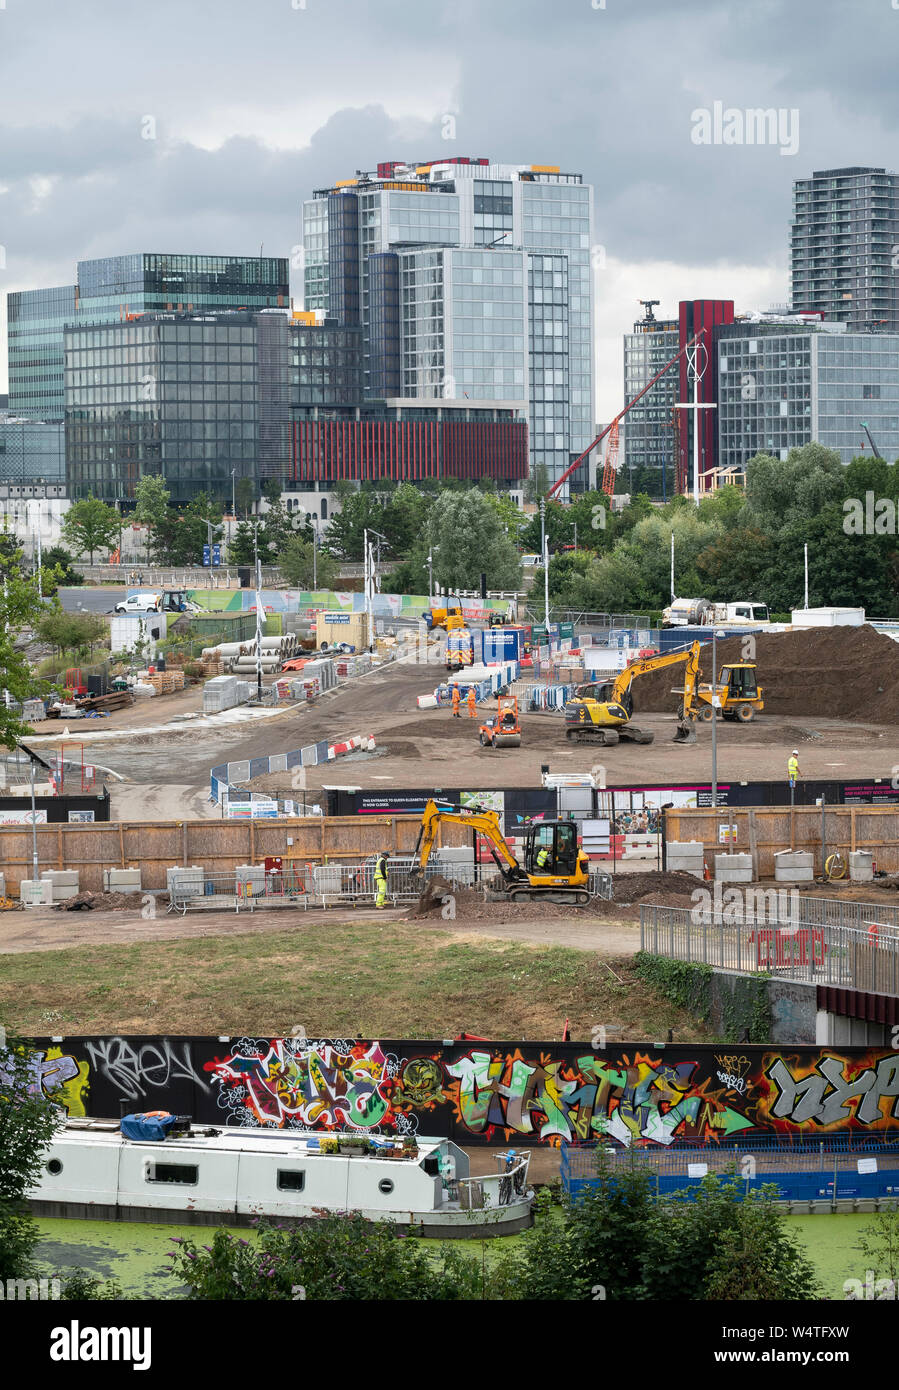 East Wick and Sweetwater development building site in the Queen Elizabeth Olympic Park, East London, UK, with the International Quarter behind. Stock Photo